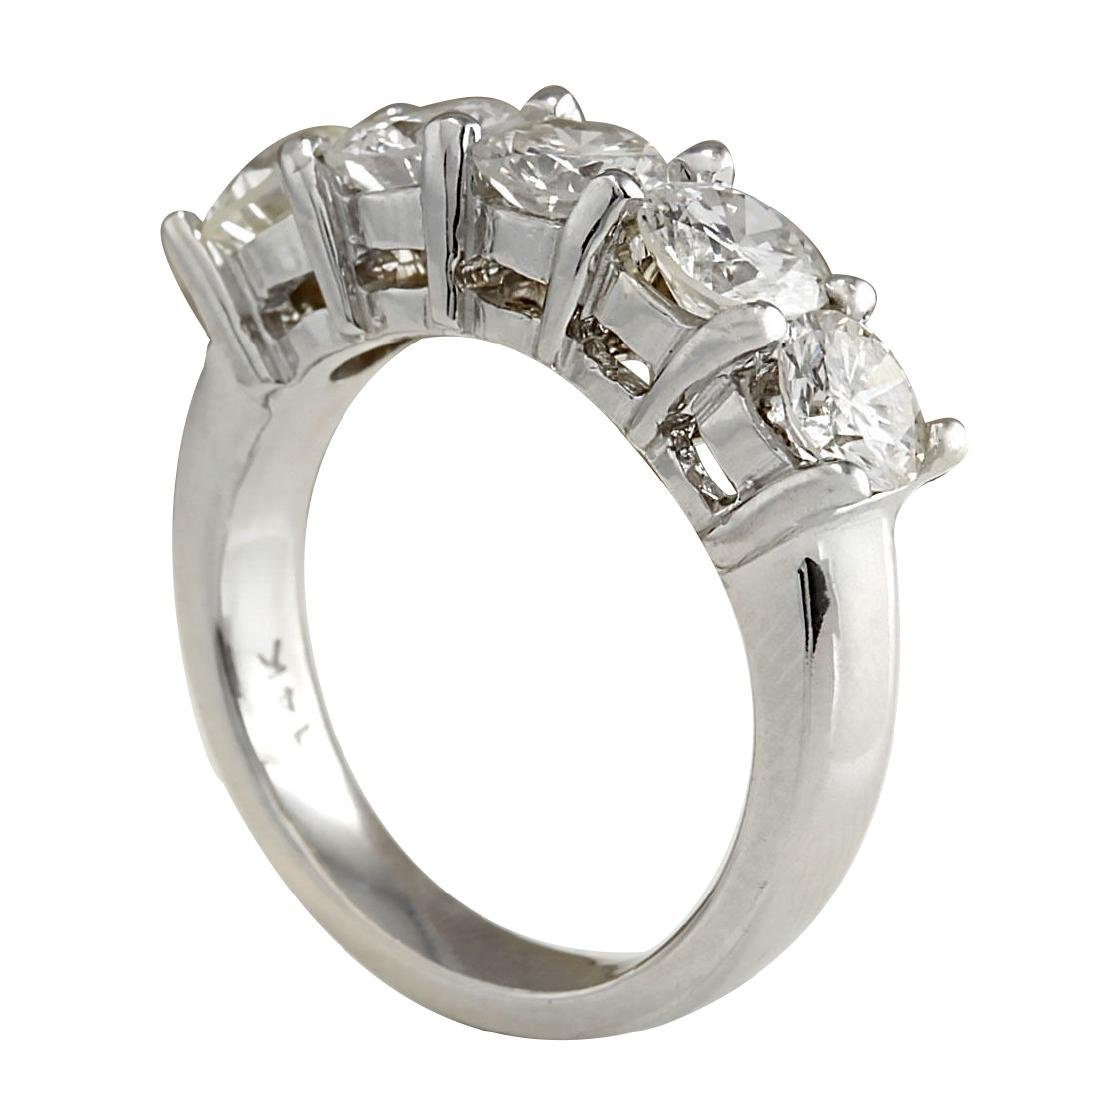 2.56CTW Natural Diamond Ring In 18K Solid White Gold - 3